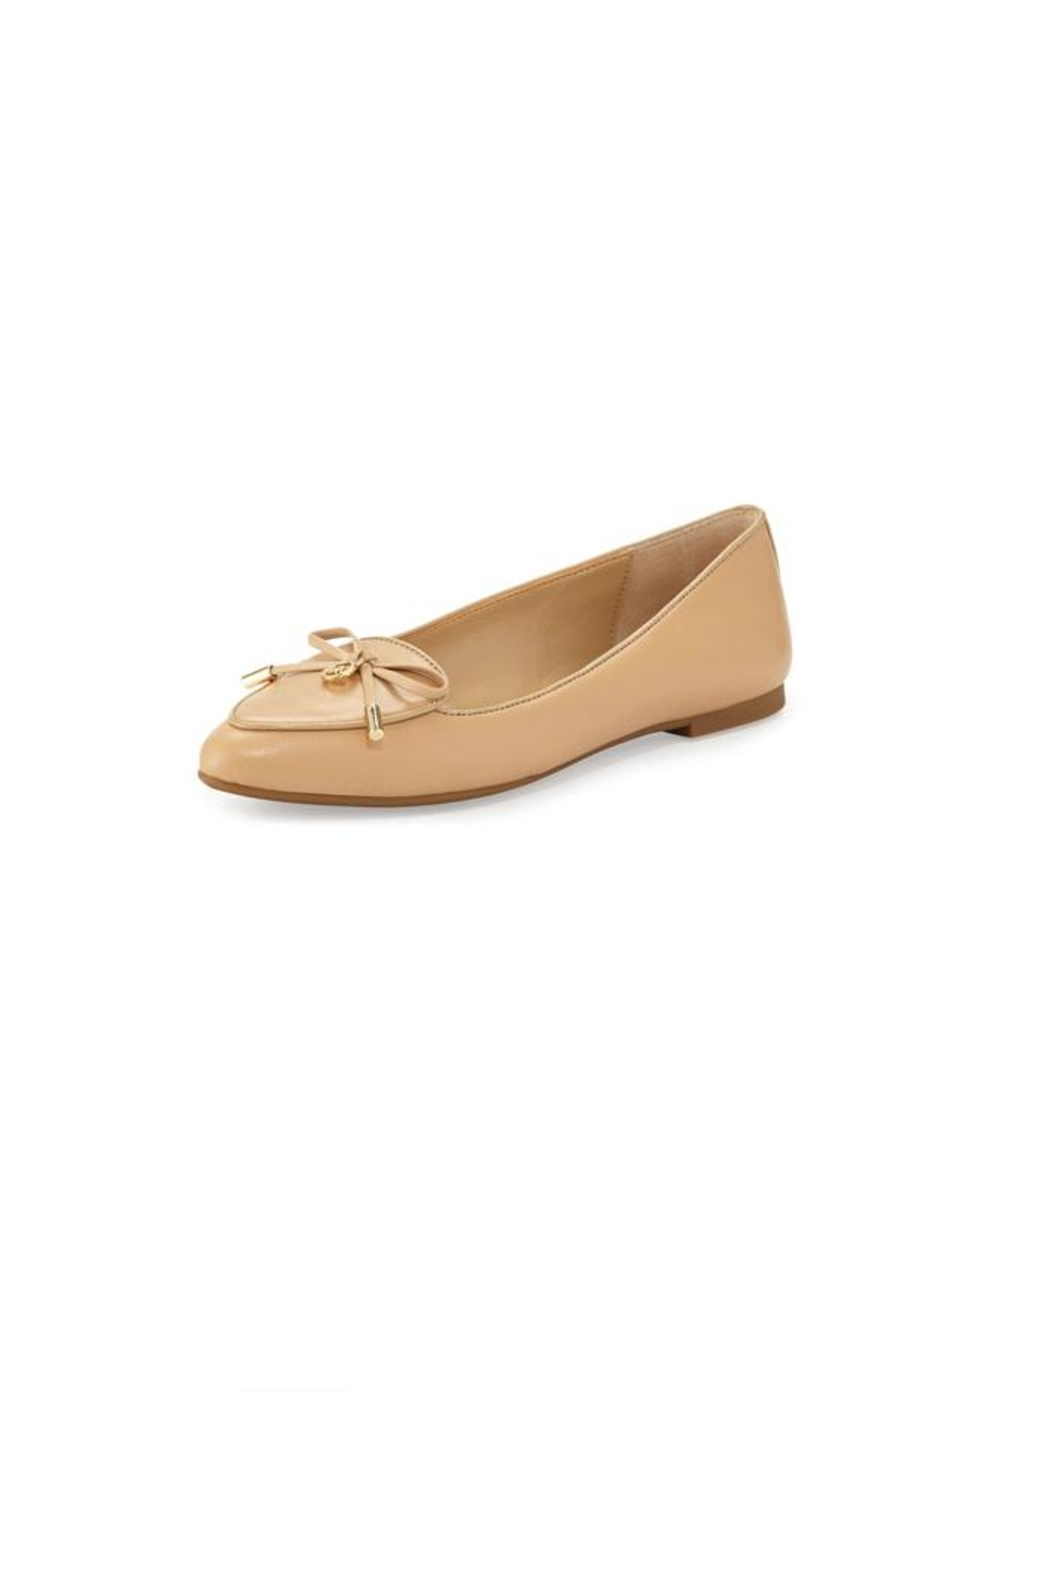 Michael Kors Nude Leather Loafers - Main Image